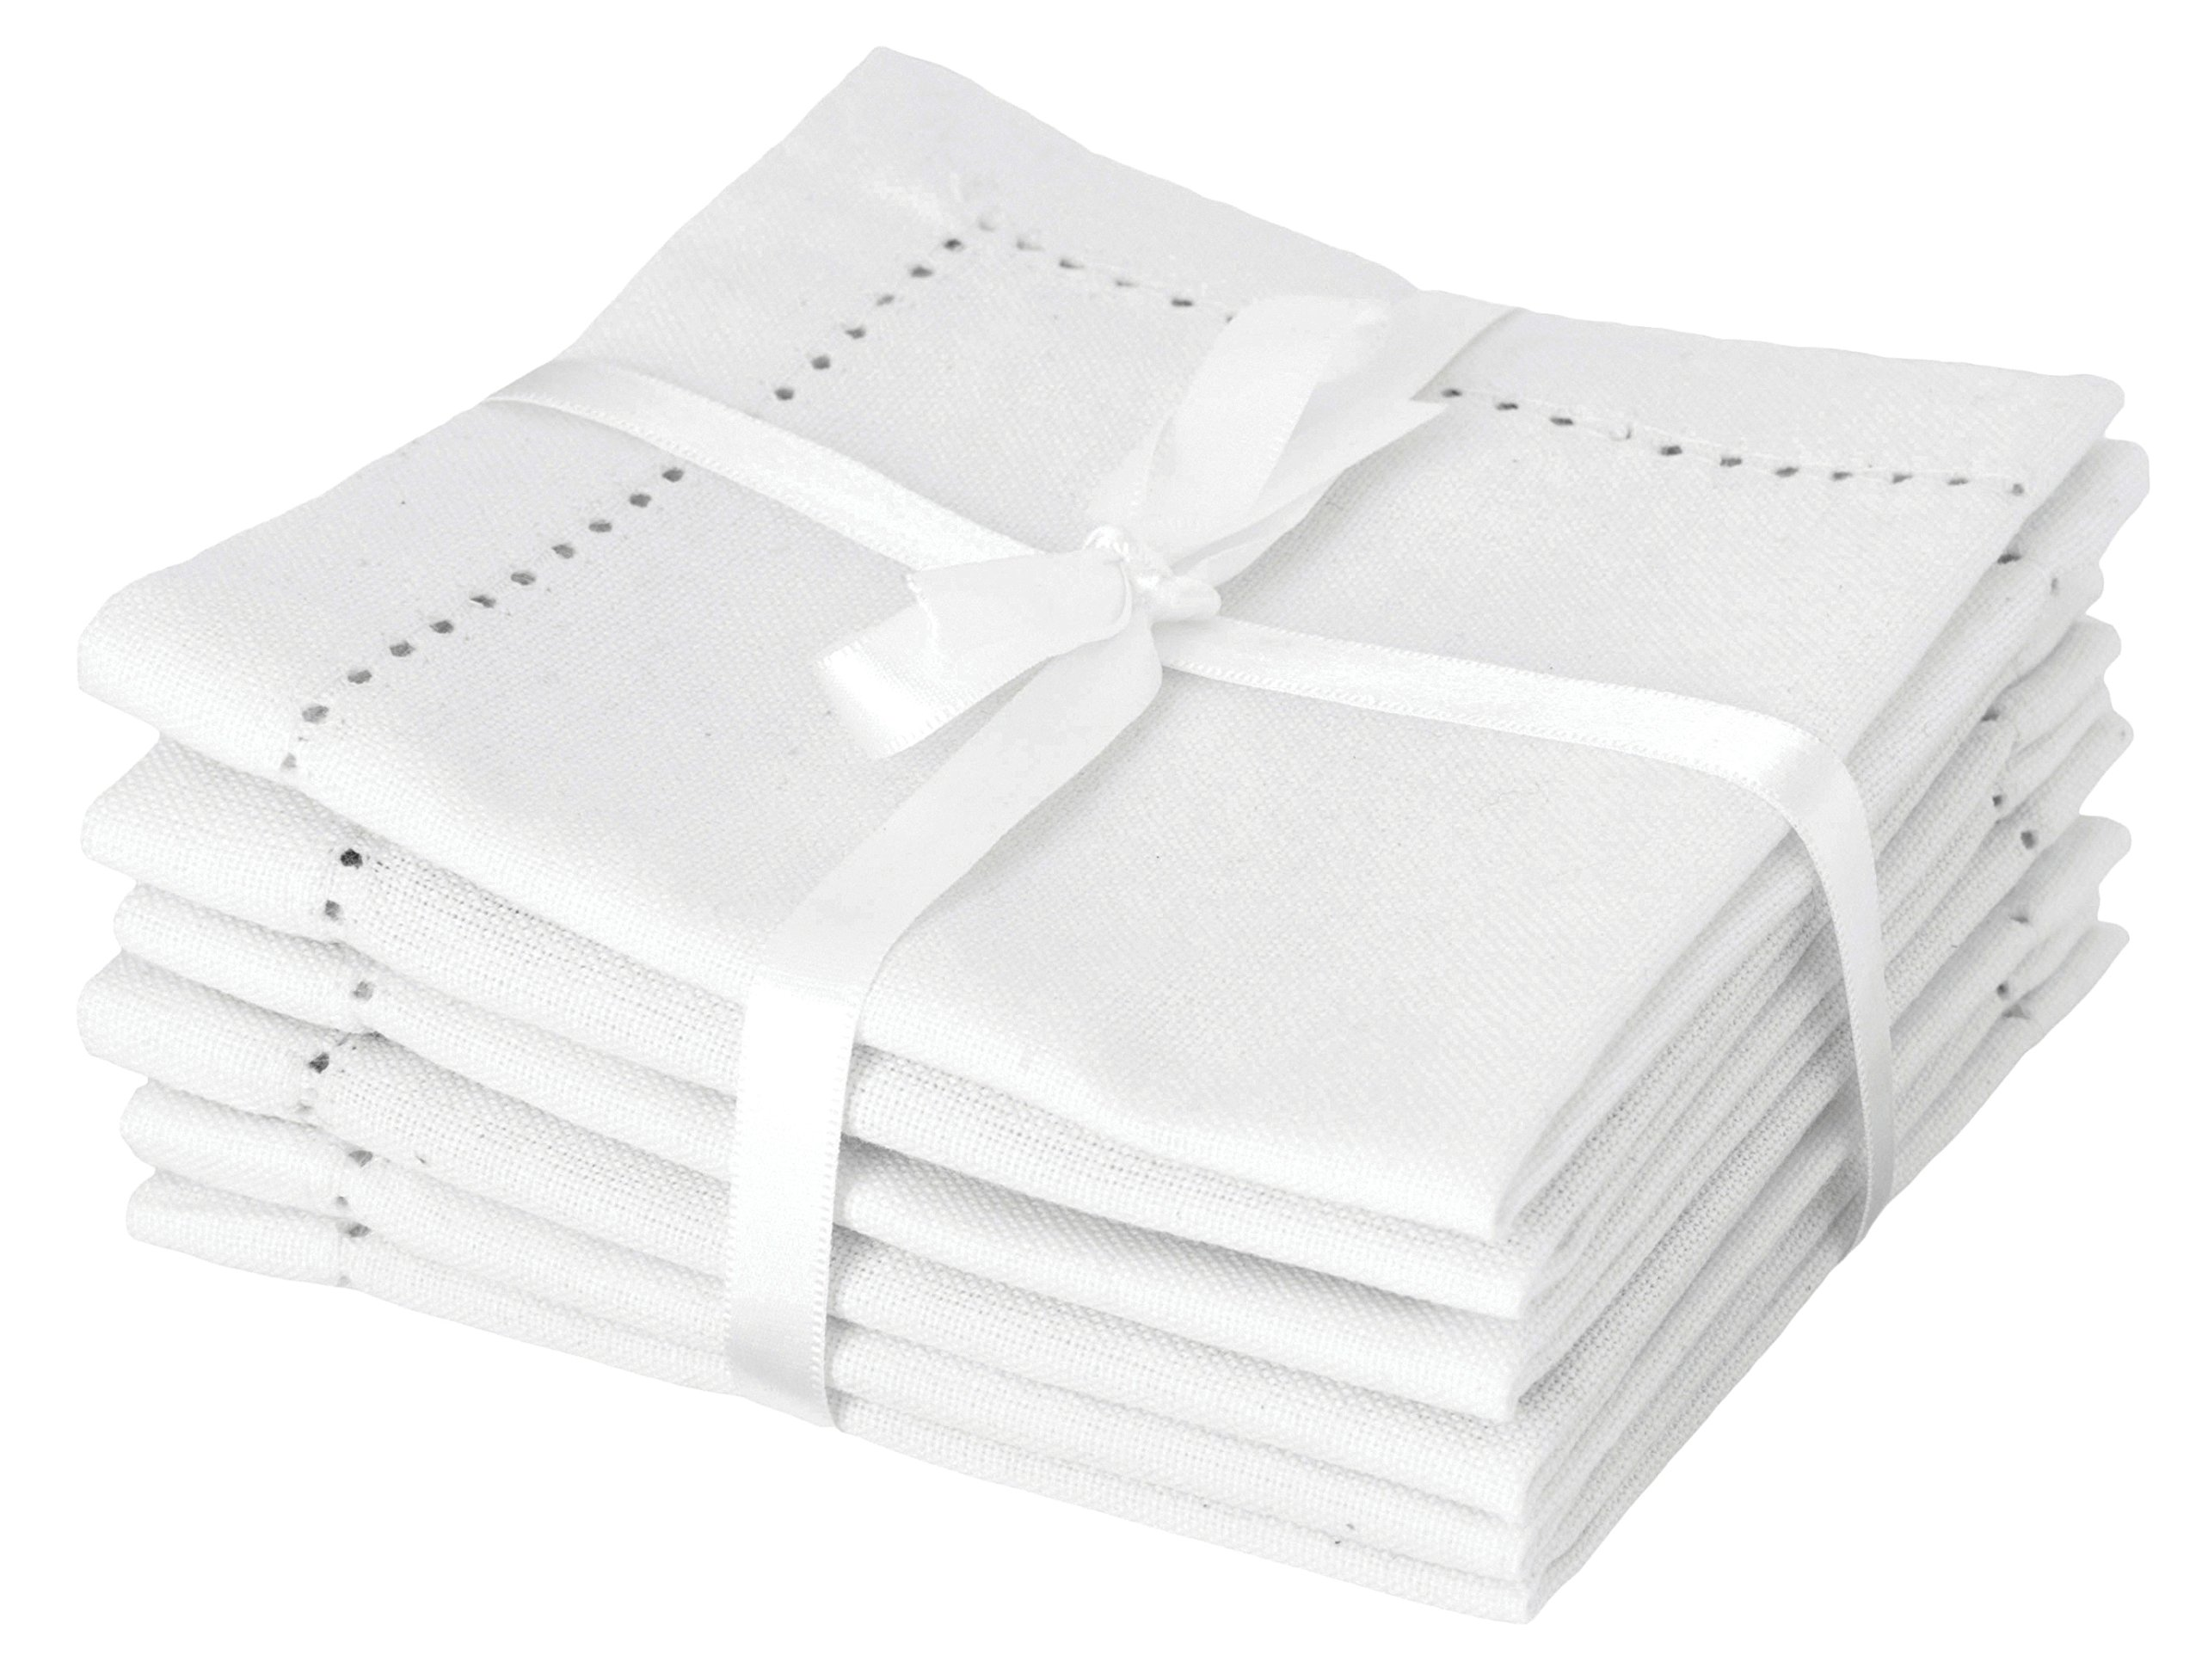 Now Designs Hemstitch Cocktail Small Napkins, Set of 6, White by Now Designs (Image #1)